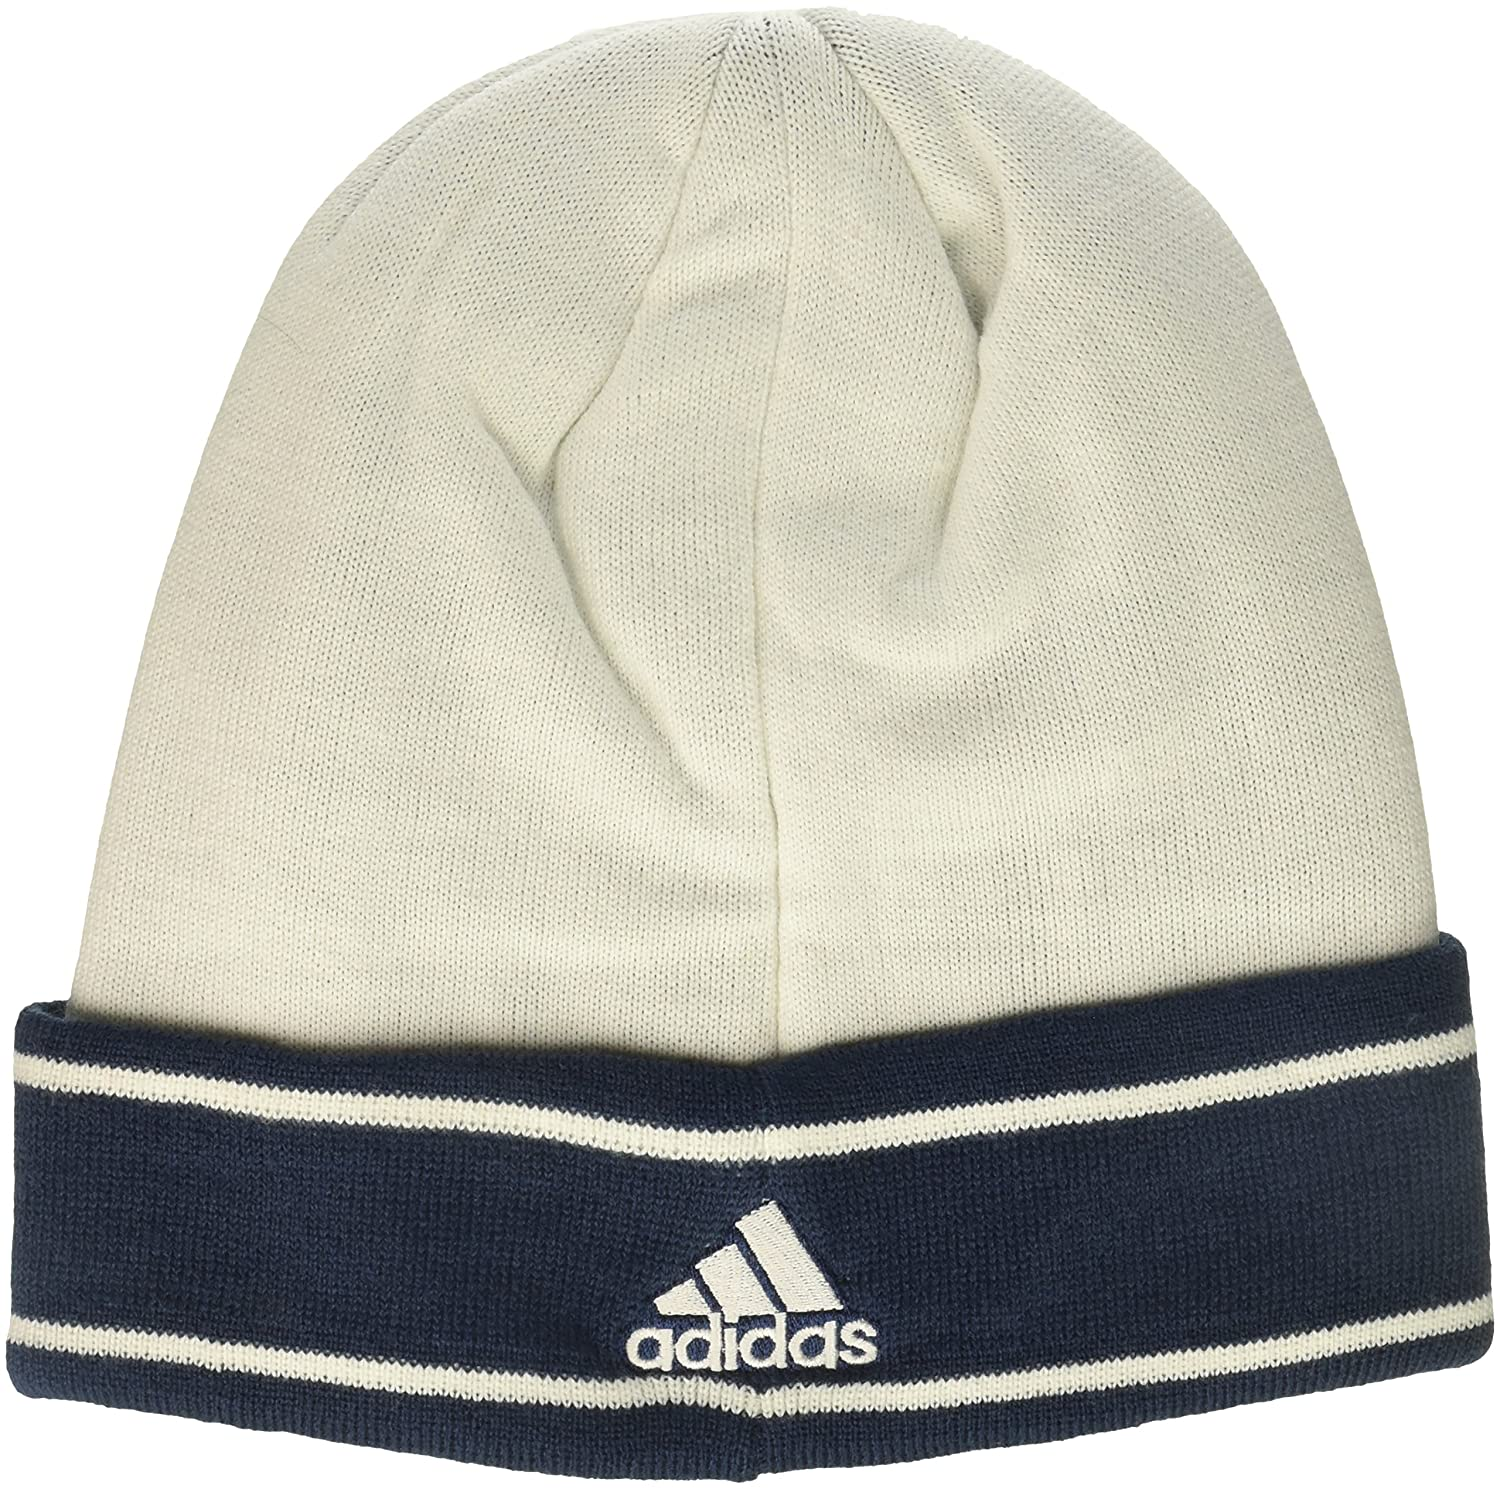 White One Size adidas Adult Men Jacquard Logo Cuffed Knit